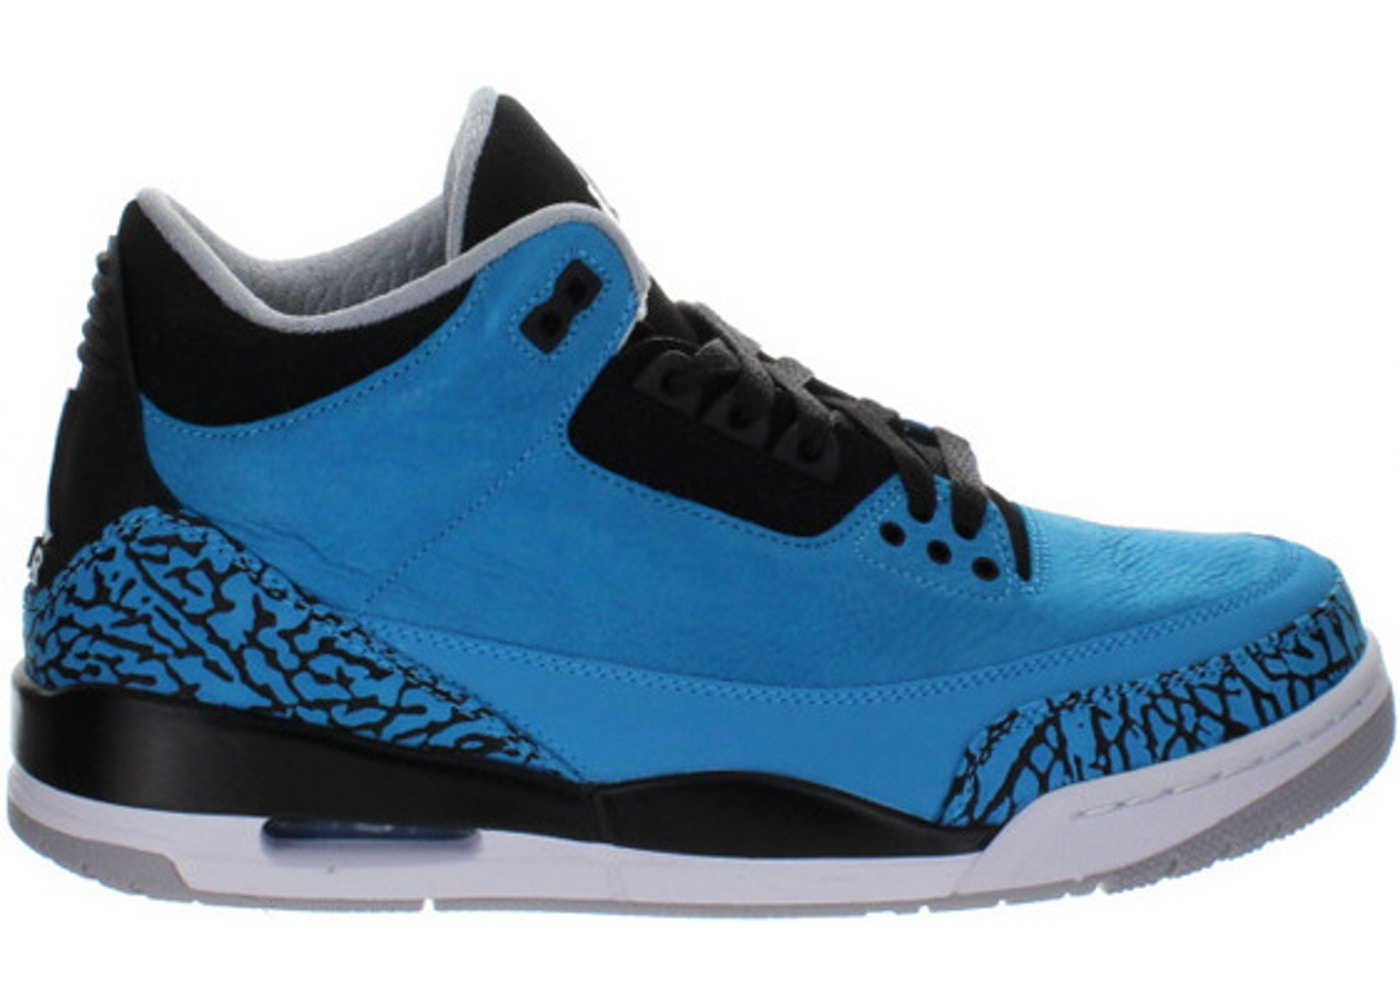 Jordan 3 Retro Powder Blue - 136064-406 4d89635e8